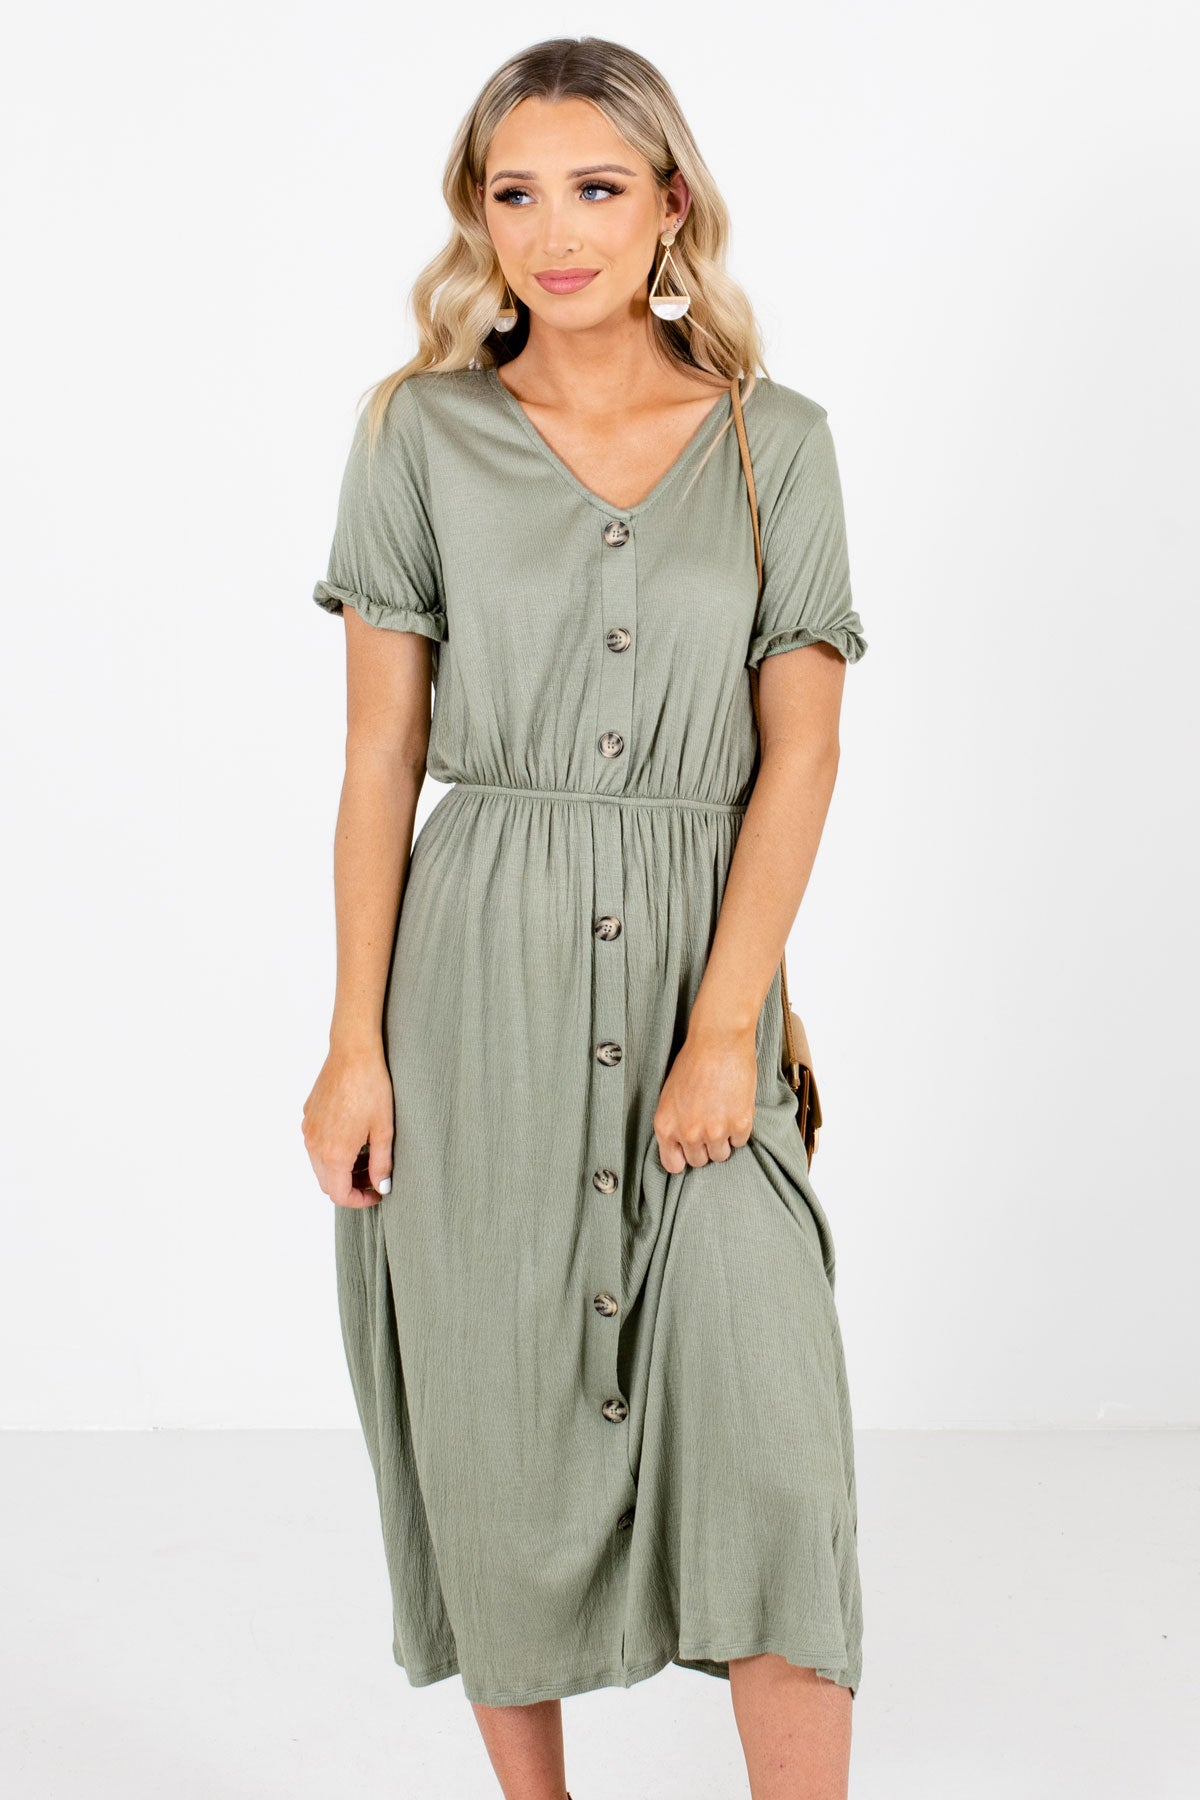 Olive Green Midi Length Boutique Dresses for Women